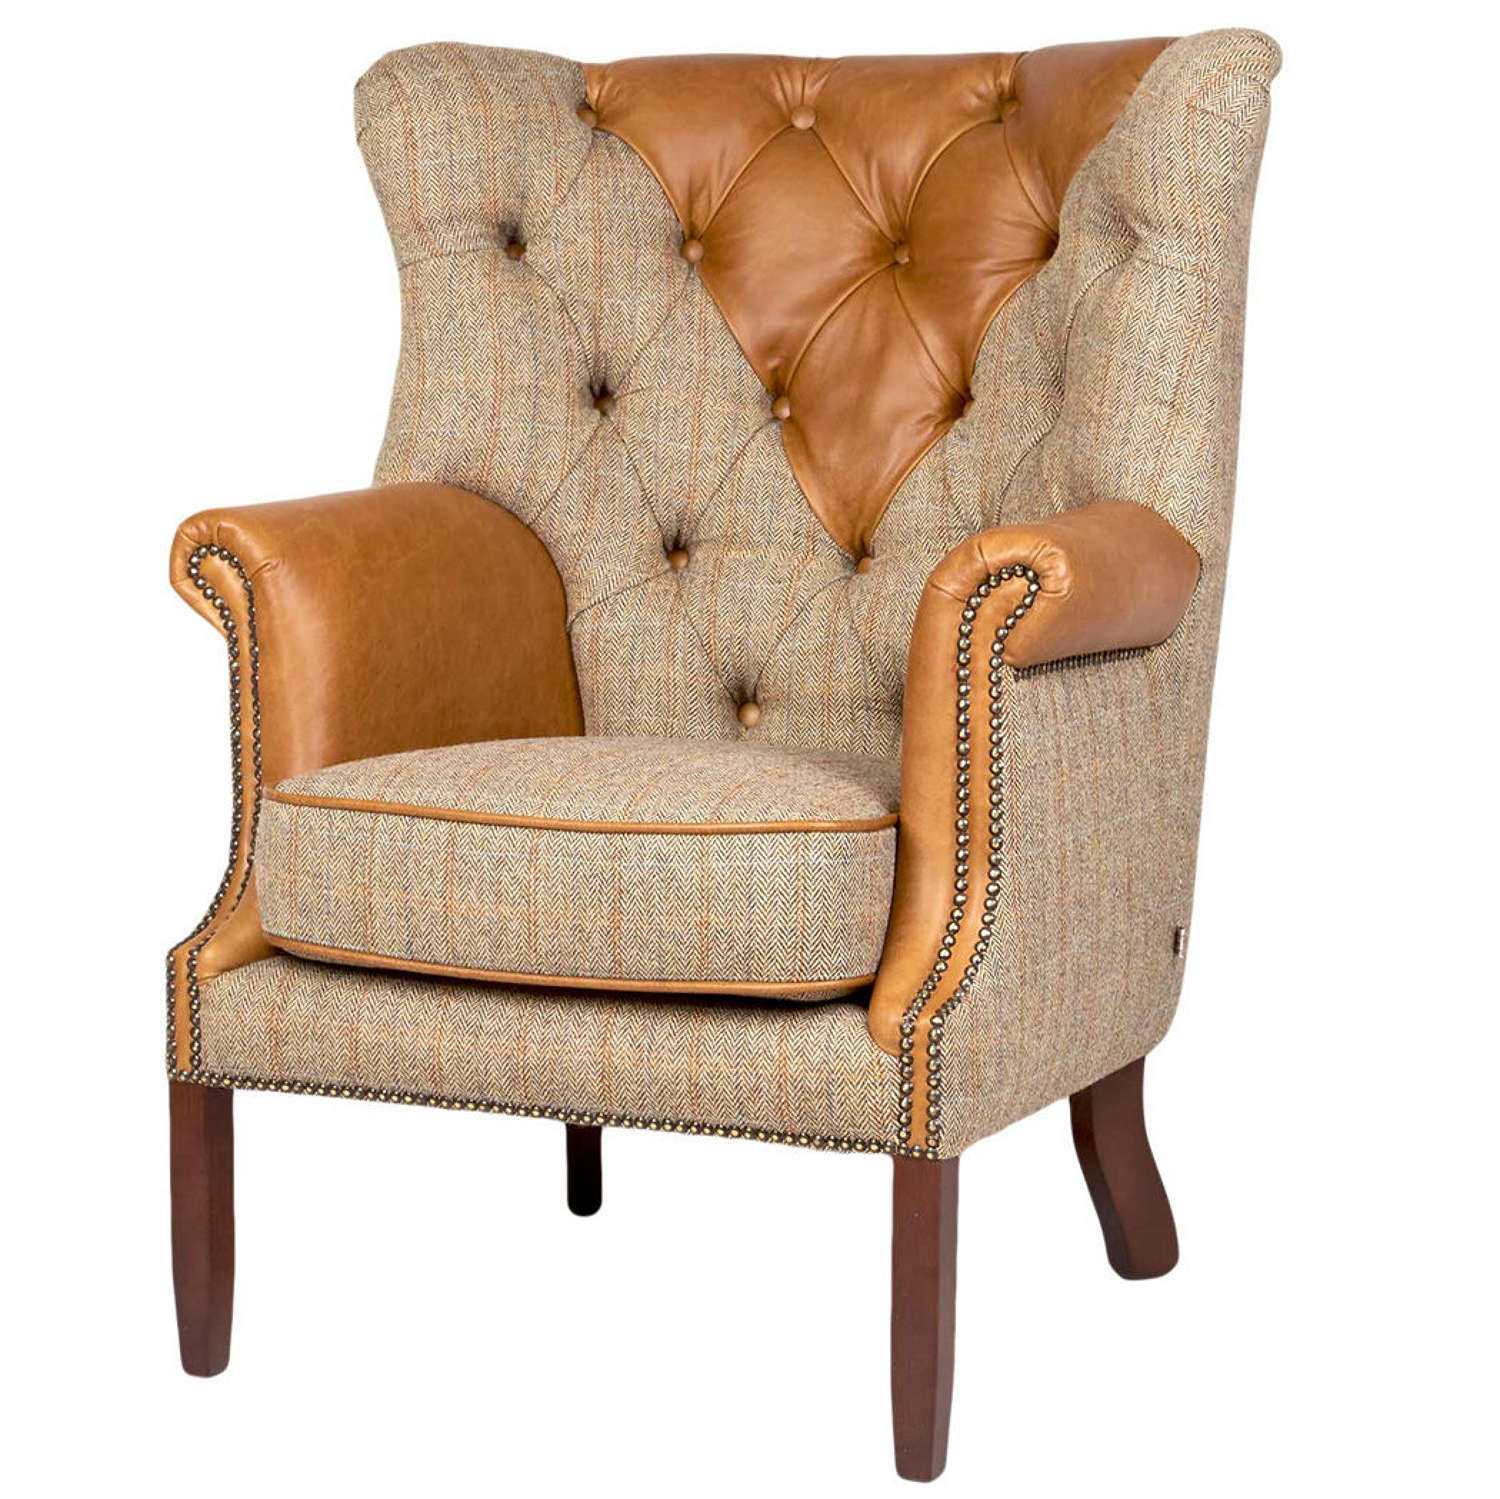 Kensington Armchair in Gamekeeper Thorn and leather